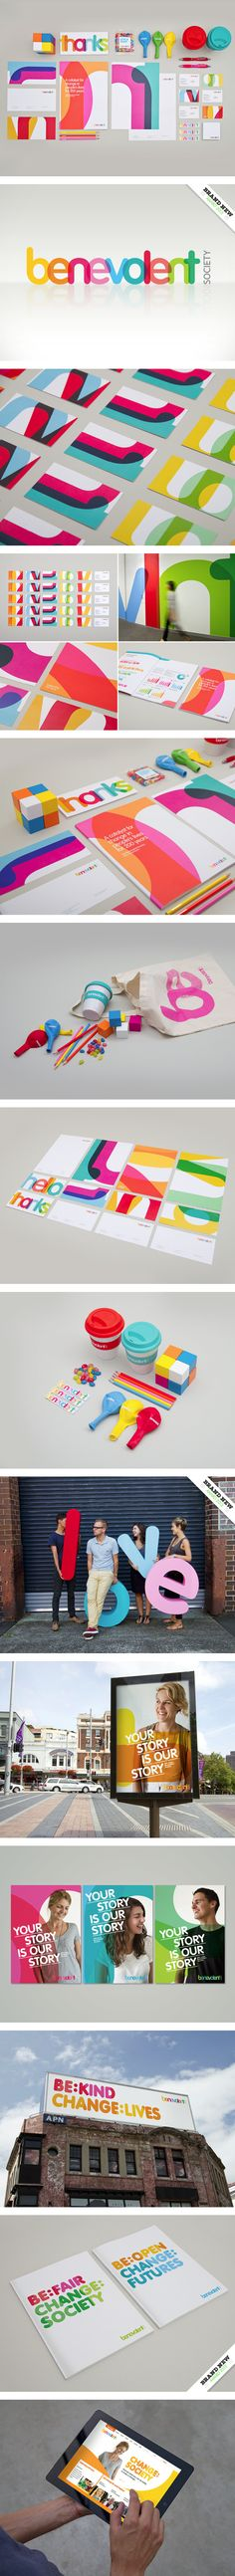 """Benevolent Society on Behance"" - the overlapping colors"